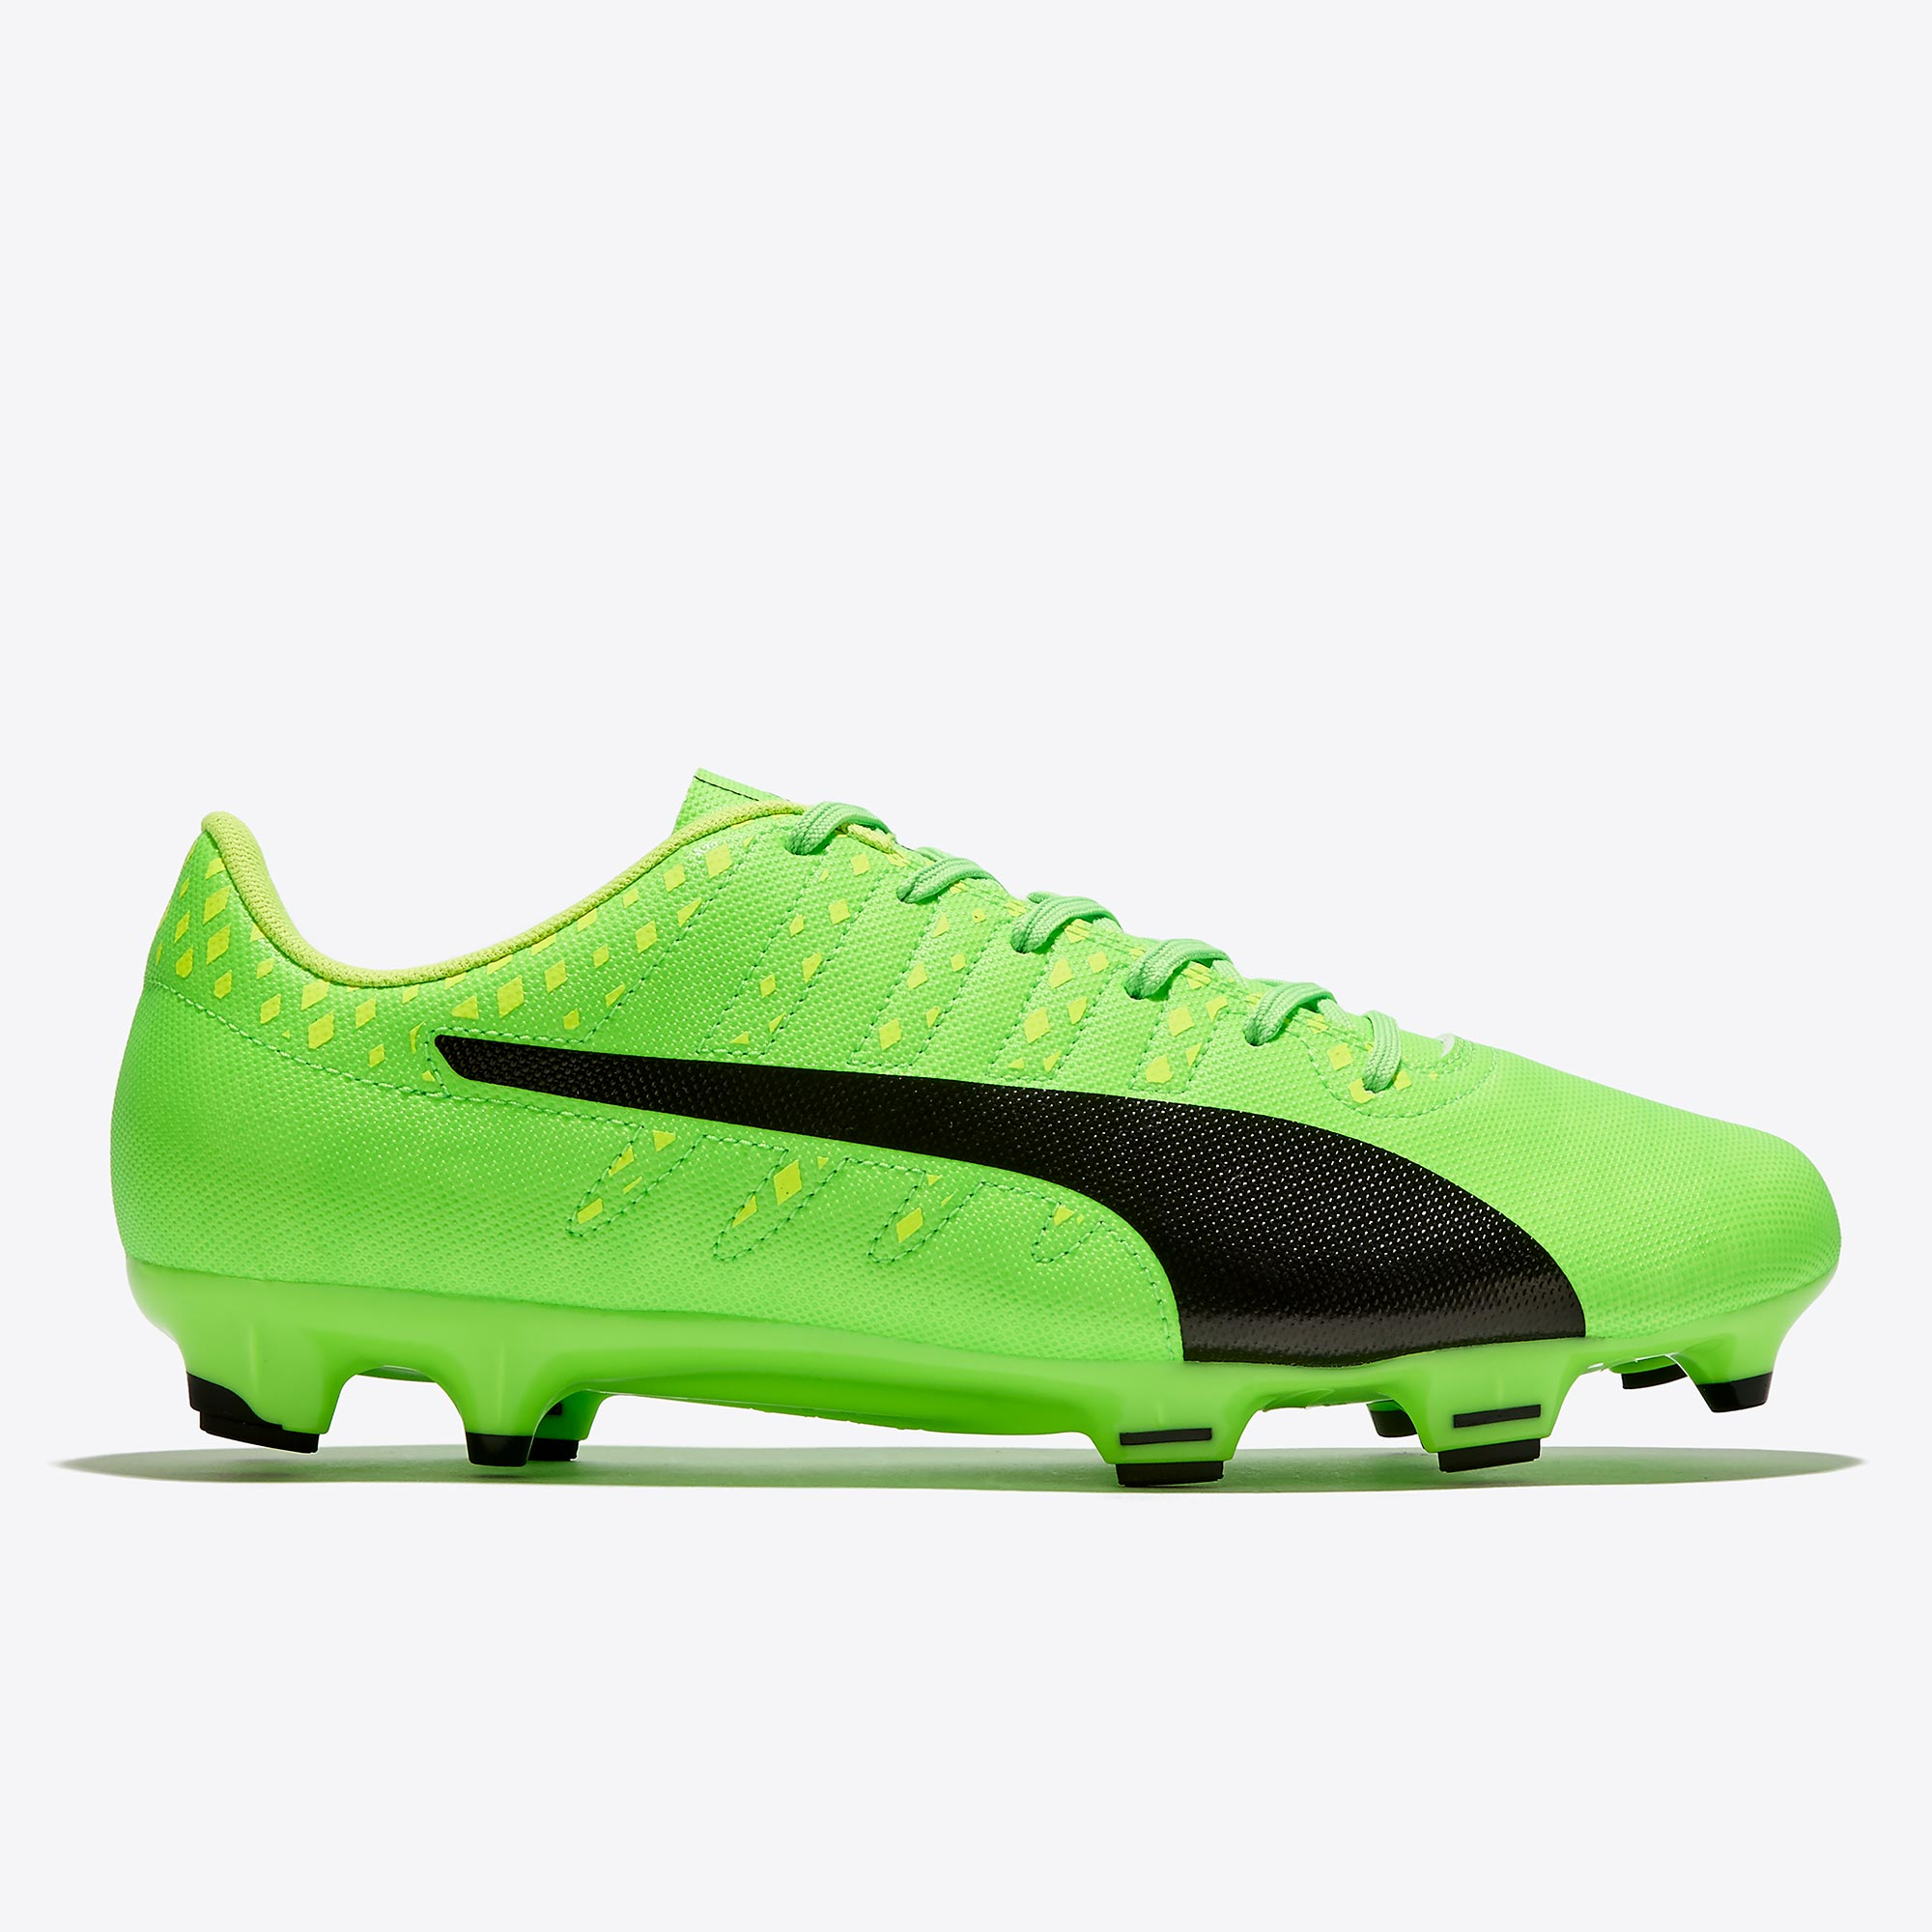 Puma evoPOWER Vigor 4 FG Green Gecko/Black/S